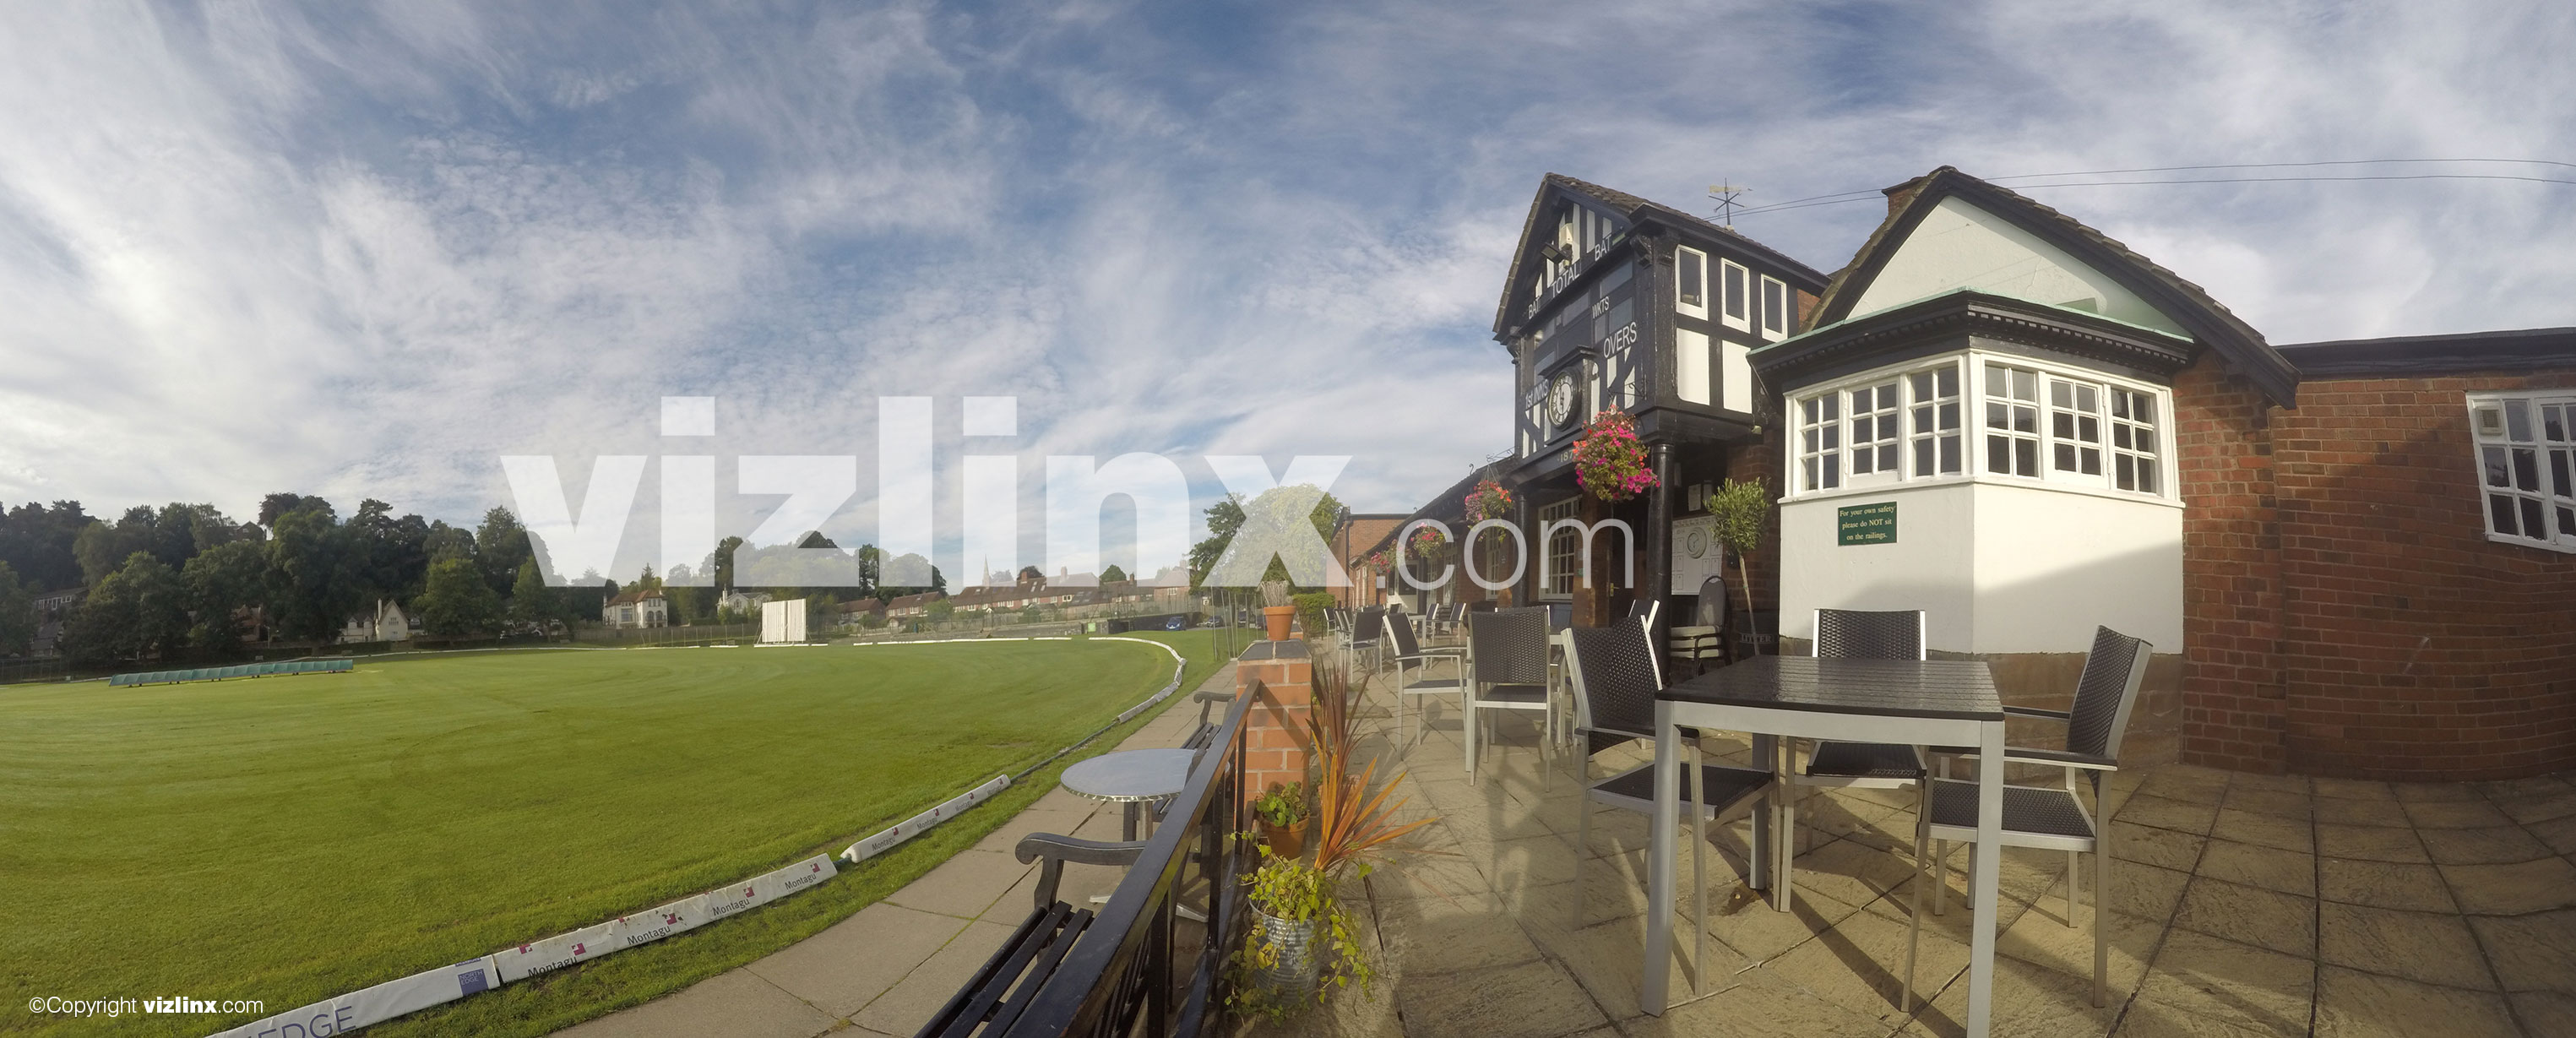 Panorama of Alderley Edge Cricket Club